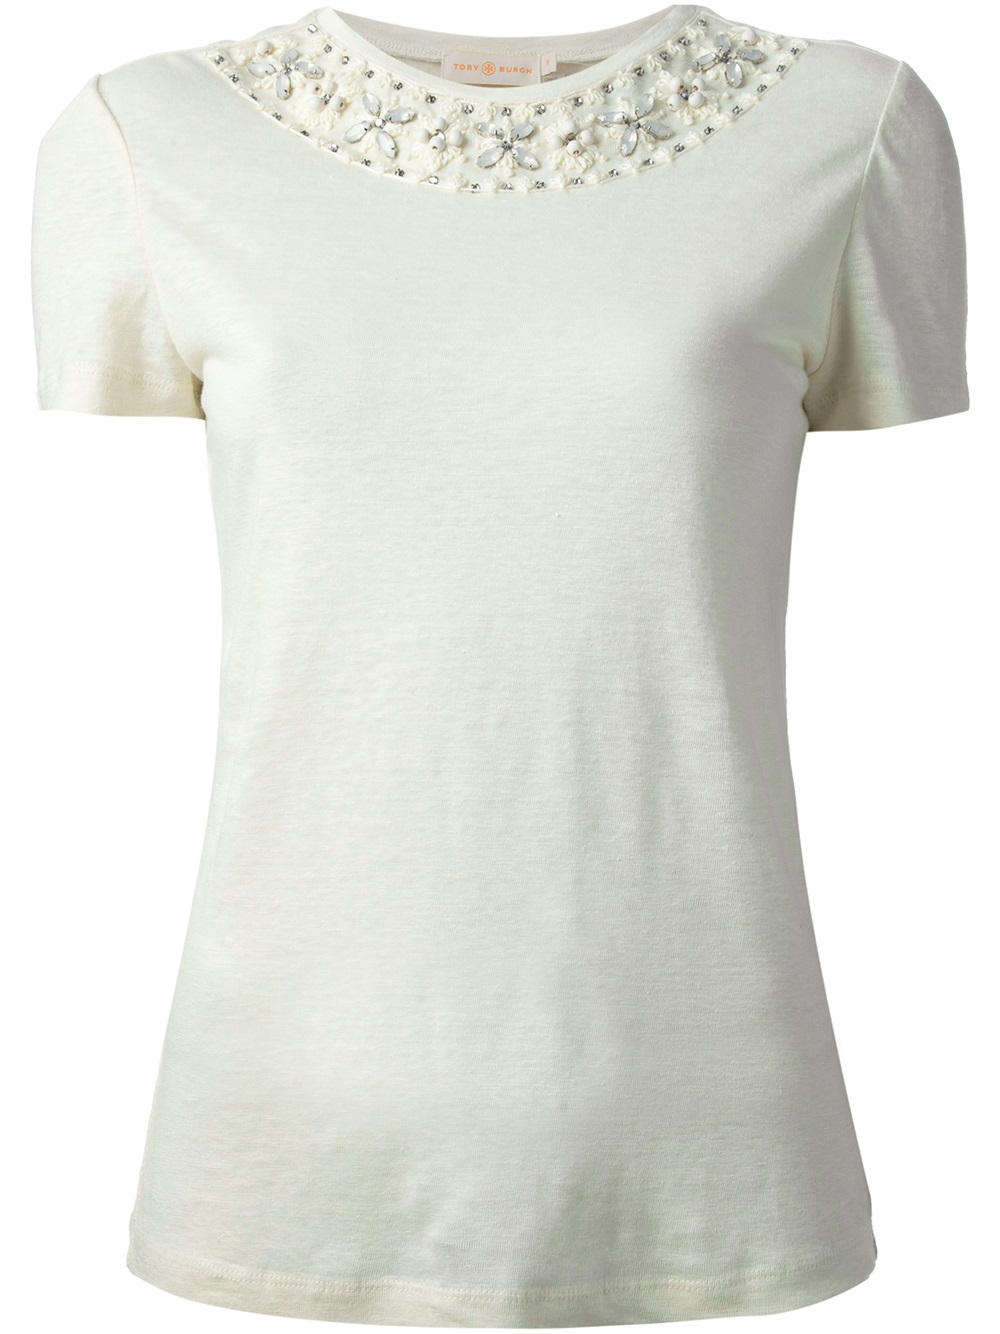 Tory burch embellished tshirt in white nude neutrals for Tory burch t shirt